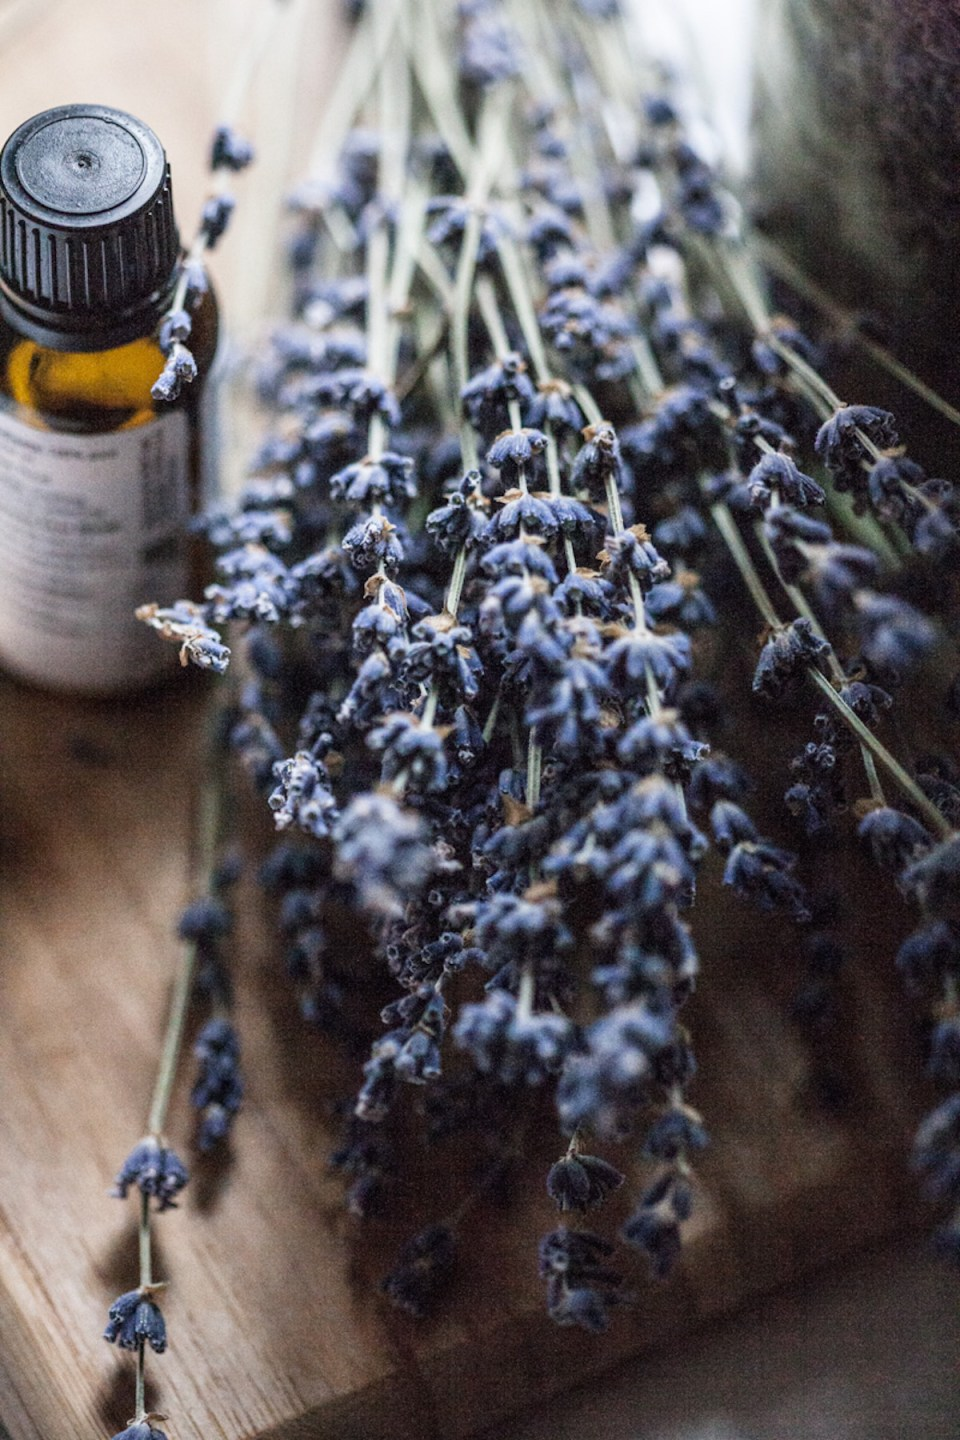 Lavender Essential Oil: A Must-Have For Every Natural Medicine Chest | Herbal Academy | Learn all about lavender essential oil and how to use it safely in your home and for your family's health.